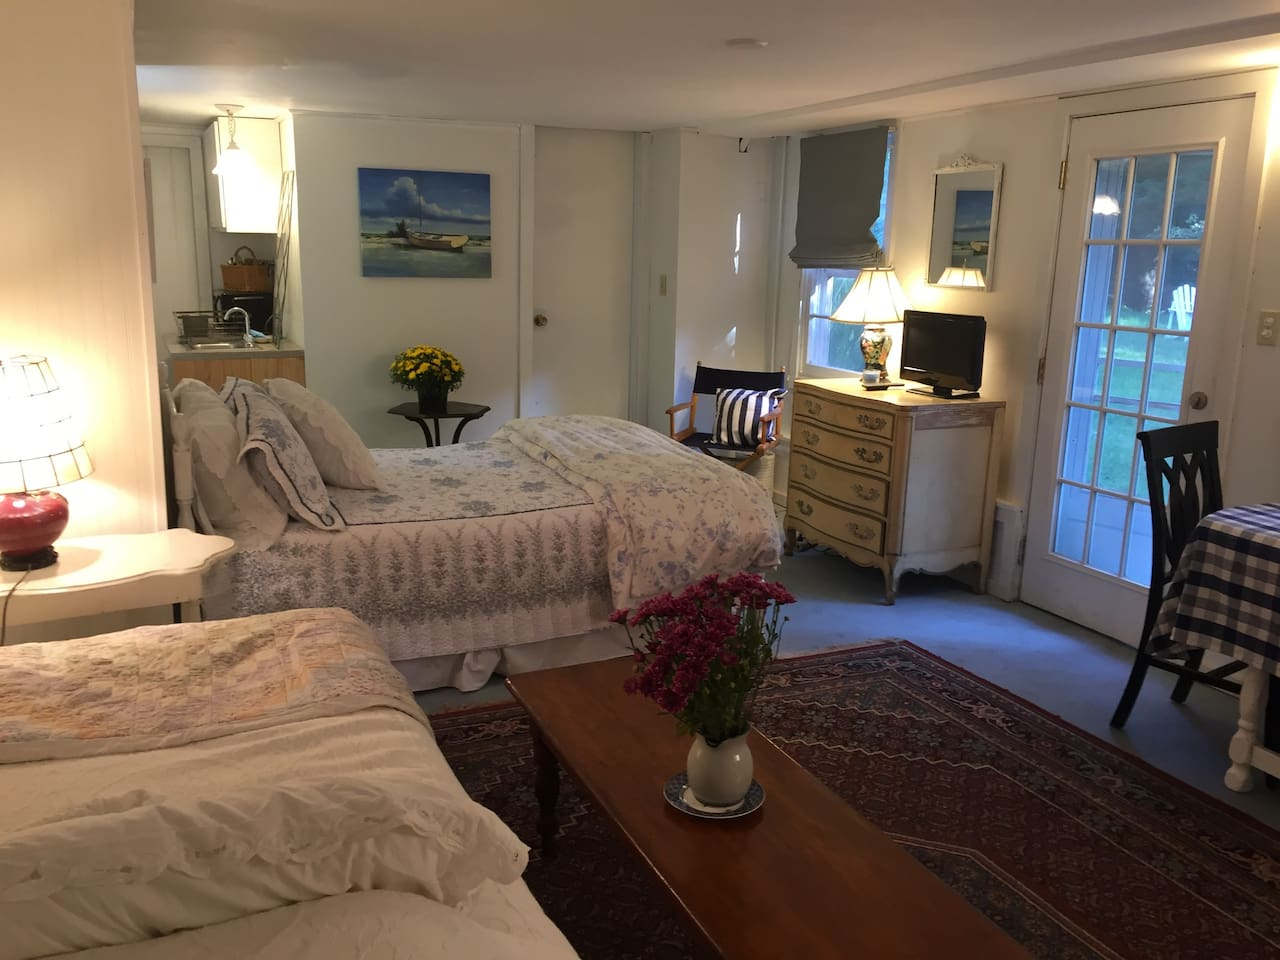 Comfortable space with  one full size bed and a trundle bed with 2 twins. There is also a small kitchenette with a refrigerator, sink, microwave and coffee maker.